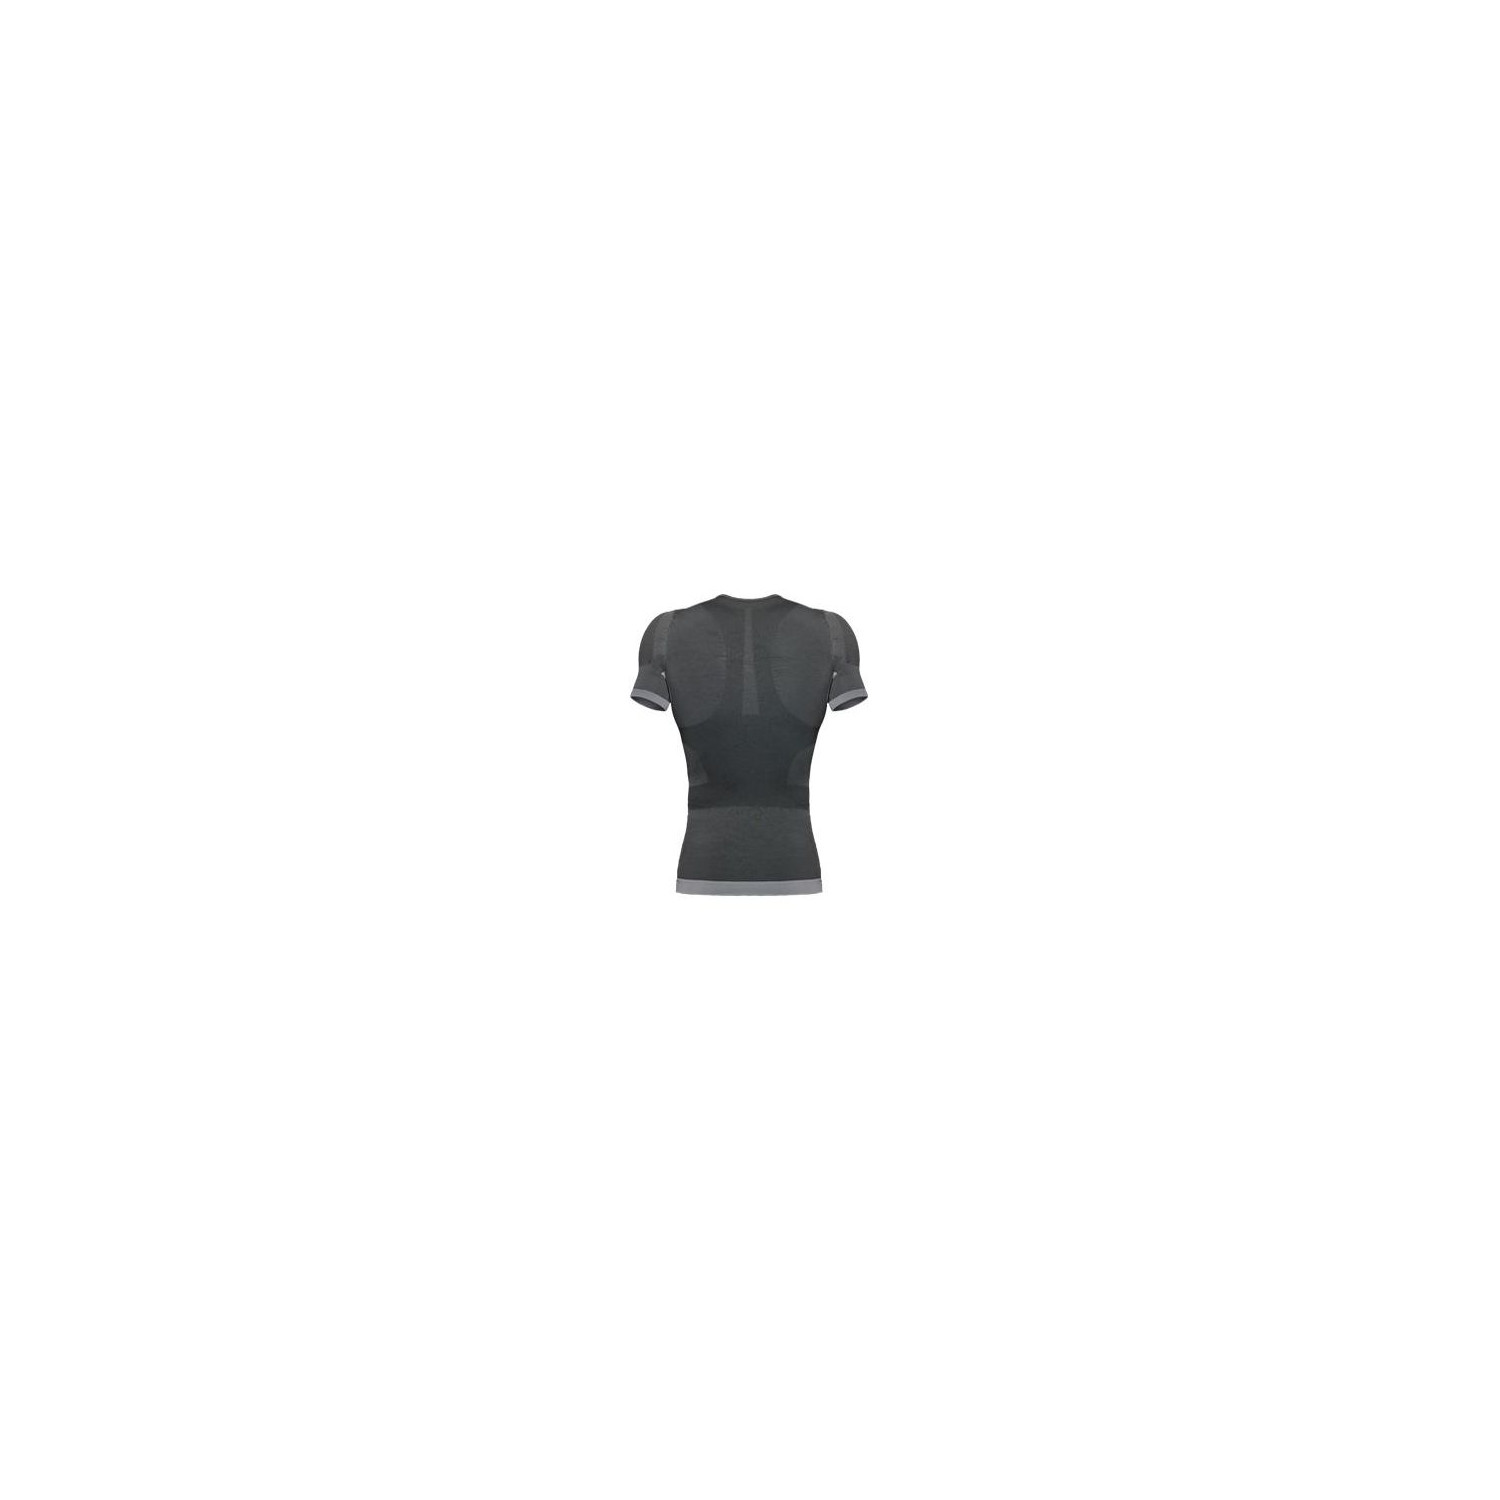 Spring Revolution Ms Short Sleeve Postural Shirt